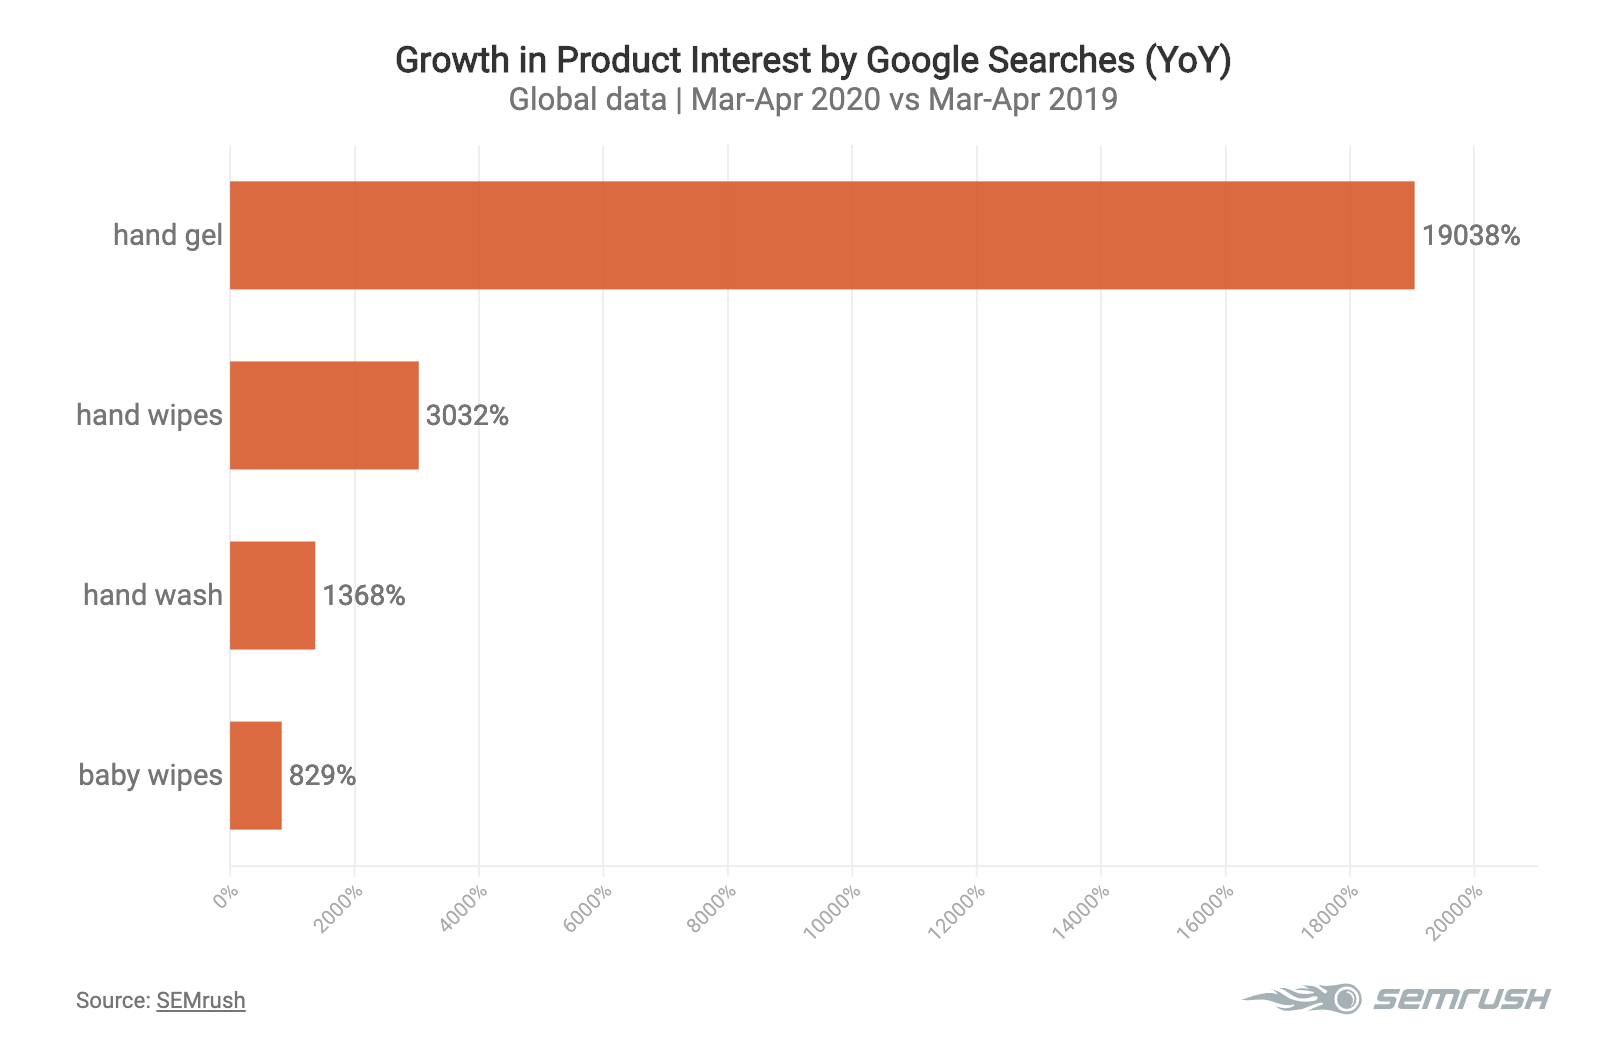 Top products by Google searches during the pandemic